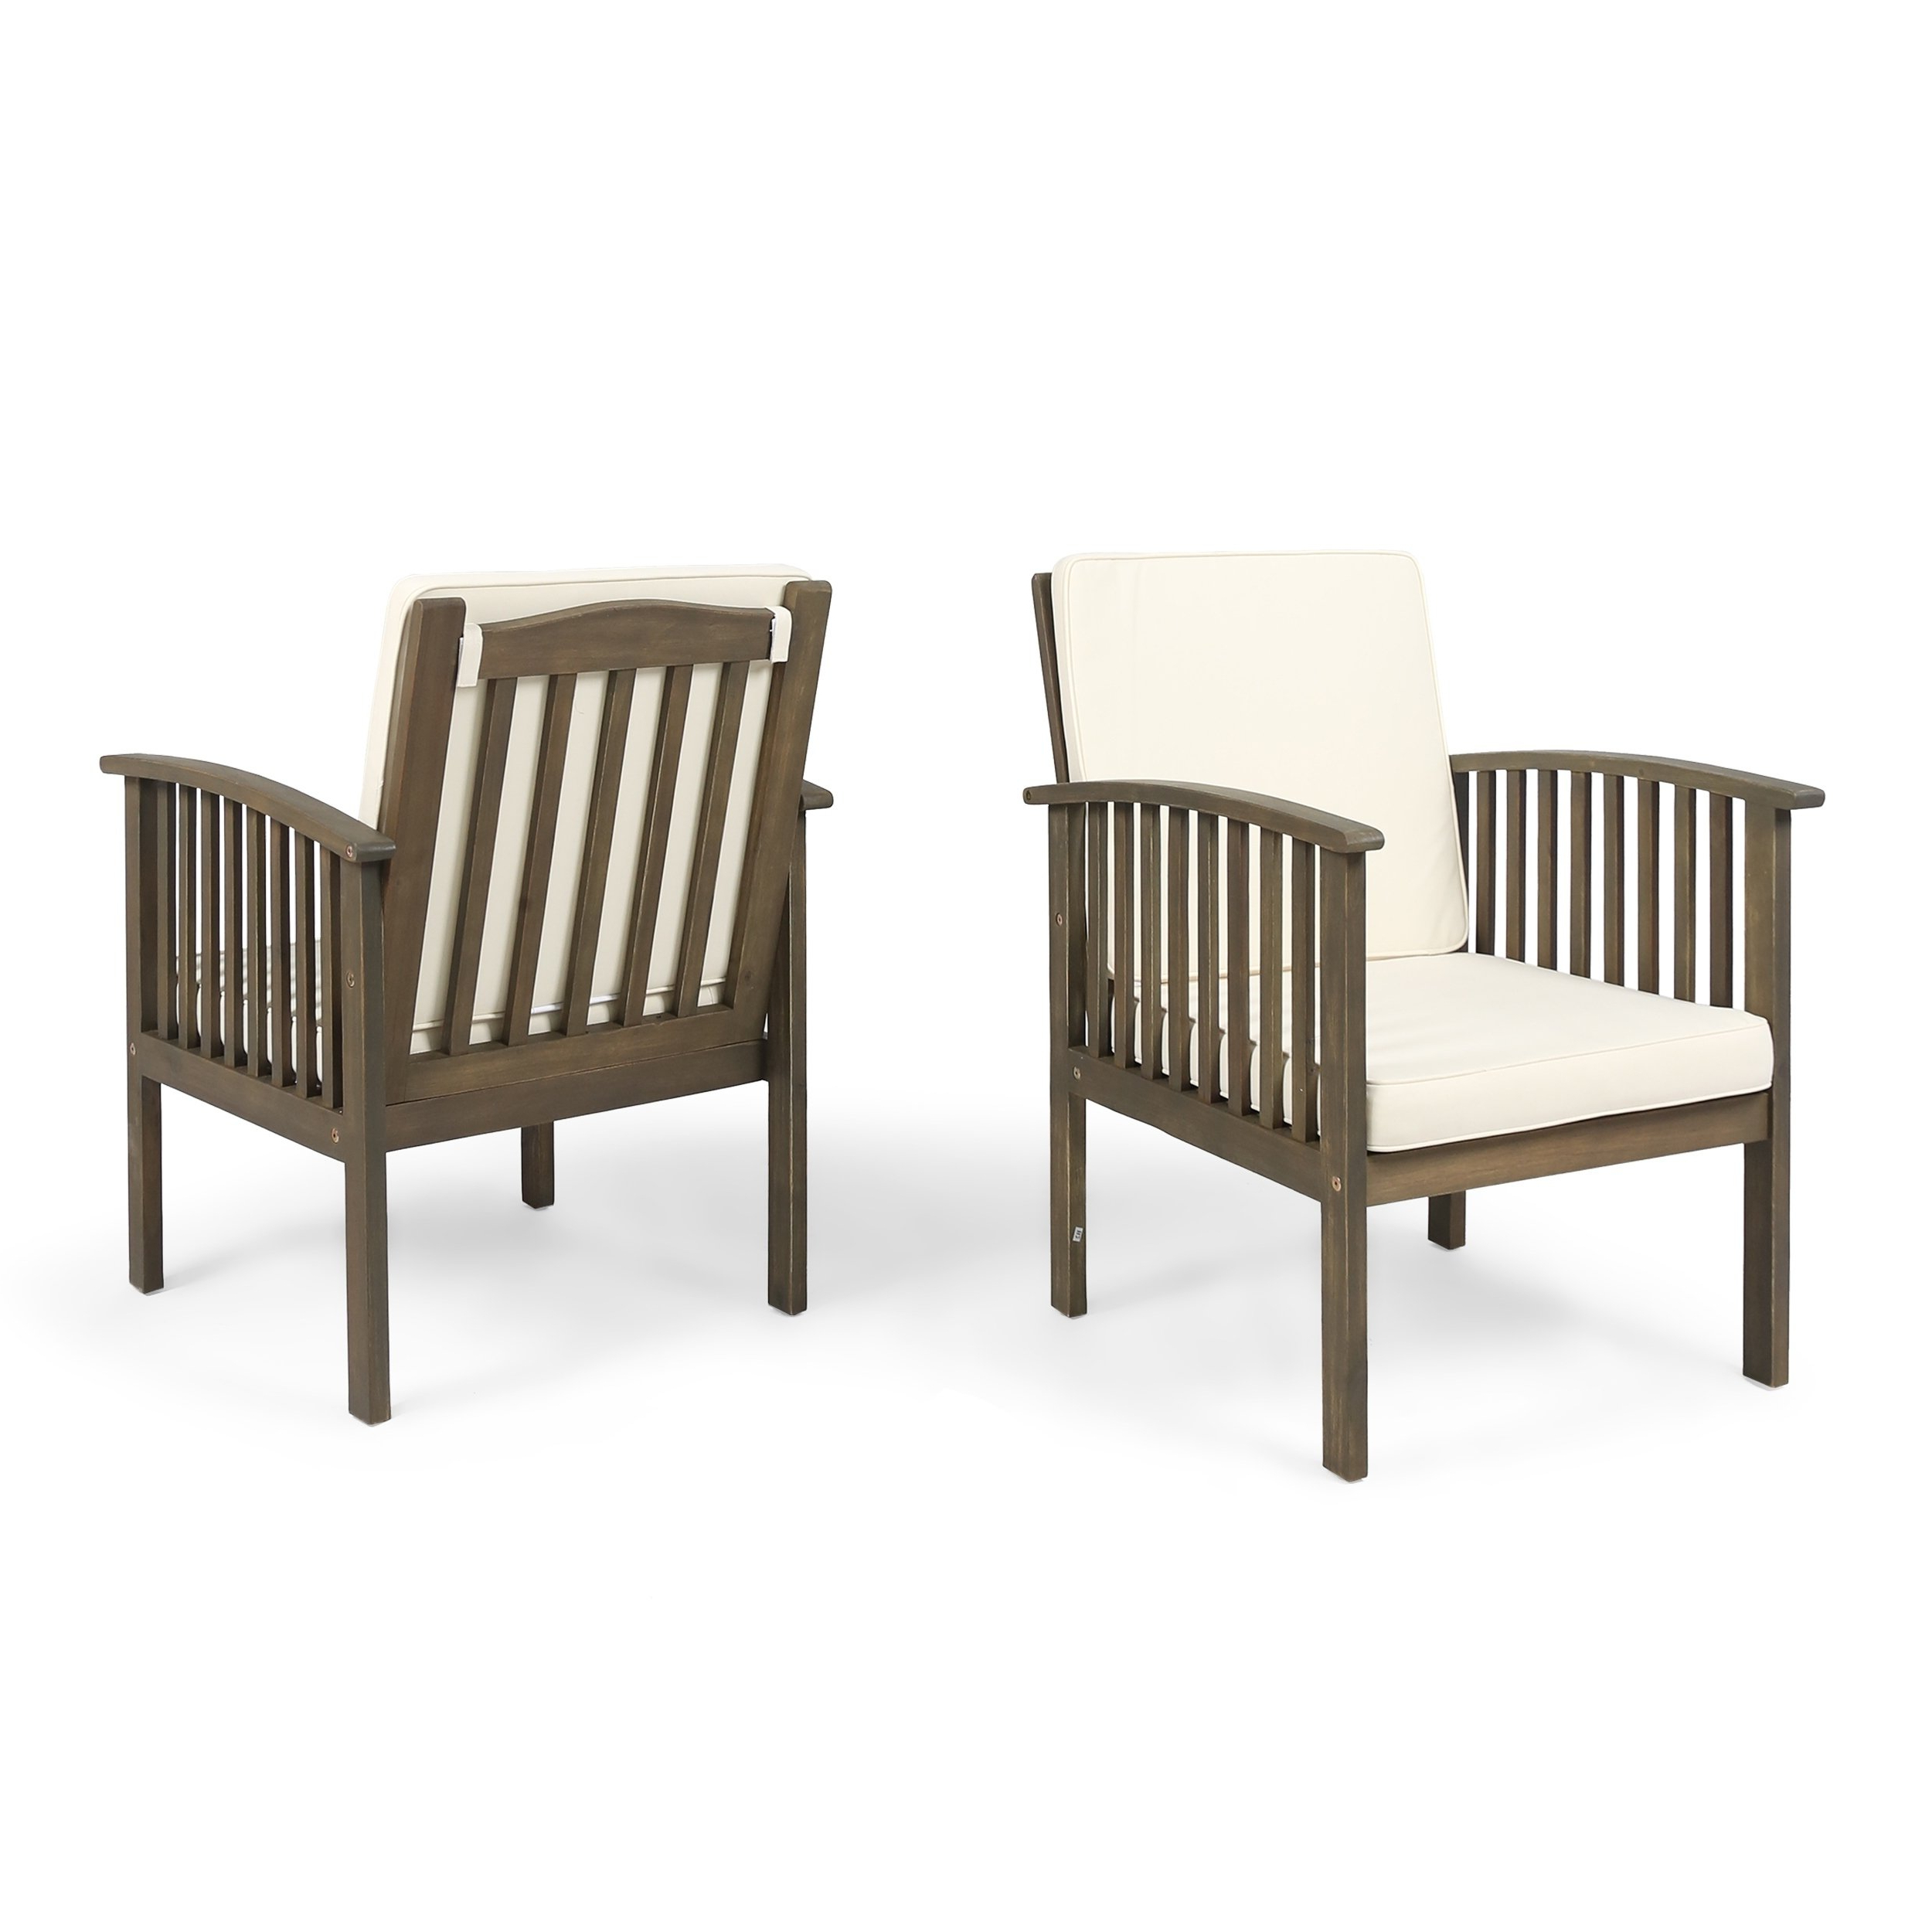 Trendy Alder Grande Ii Swivel Chairs In Buy Grey, 2 Outdoor Sofas, Chairs & Sectionals Online At Overstock (Gallery 13 of 20)